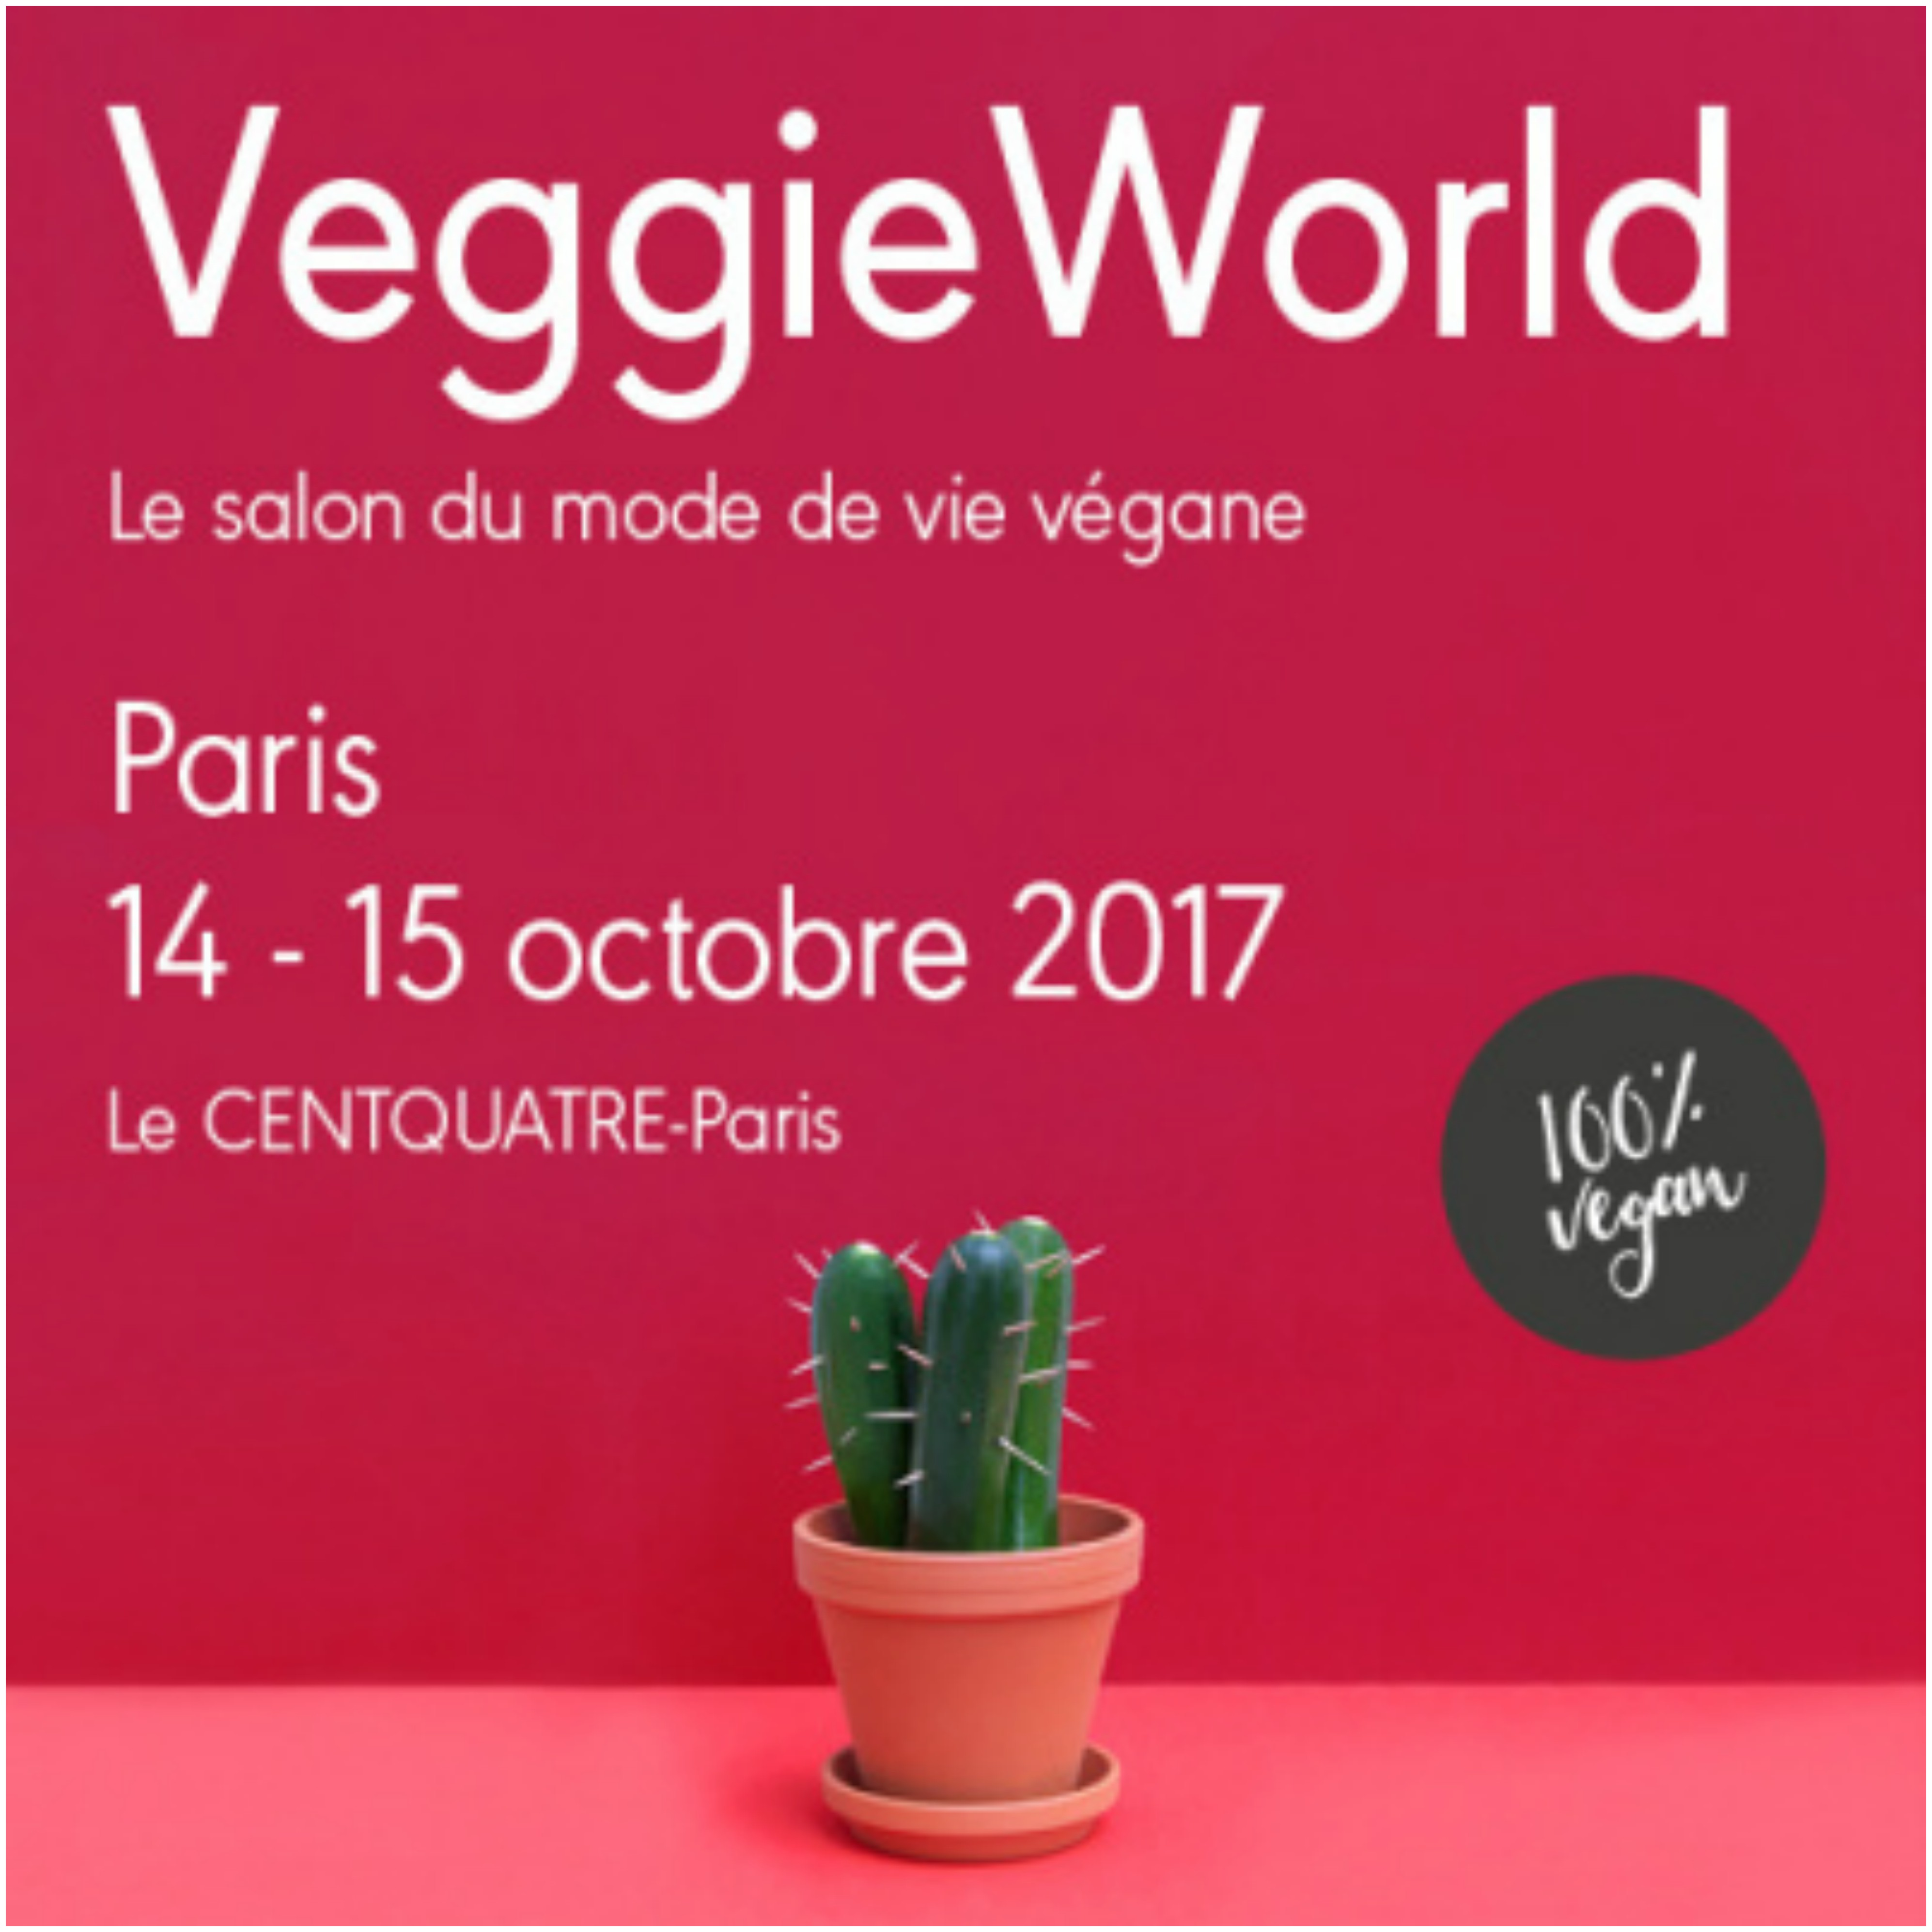 Retour sur le veggie world 2017 paris bordelaise by mimi for Salon vegan paris